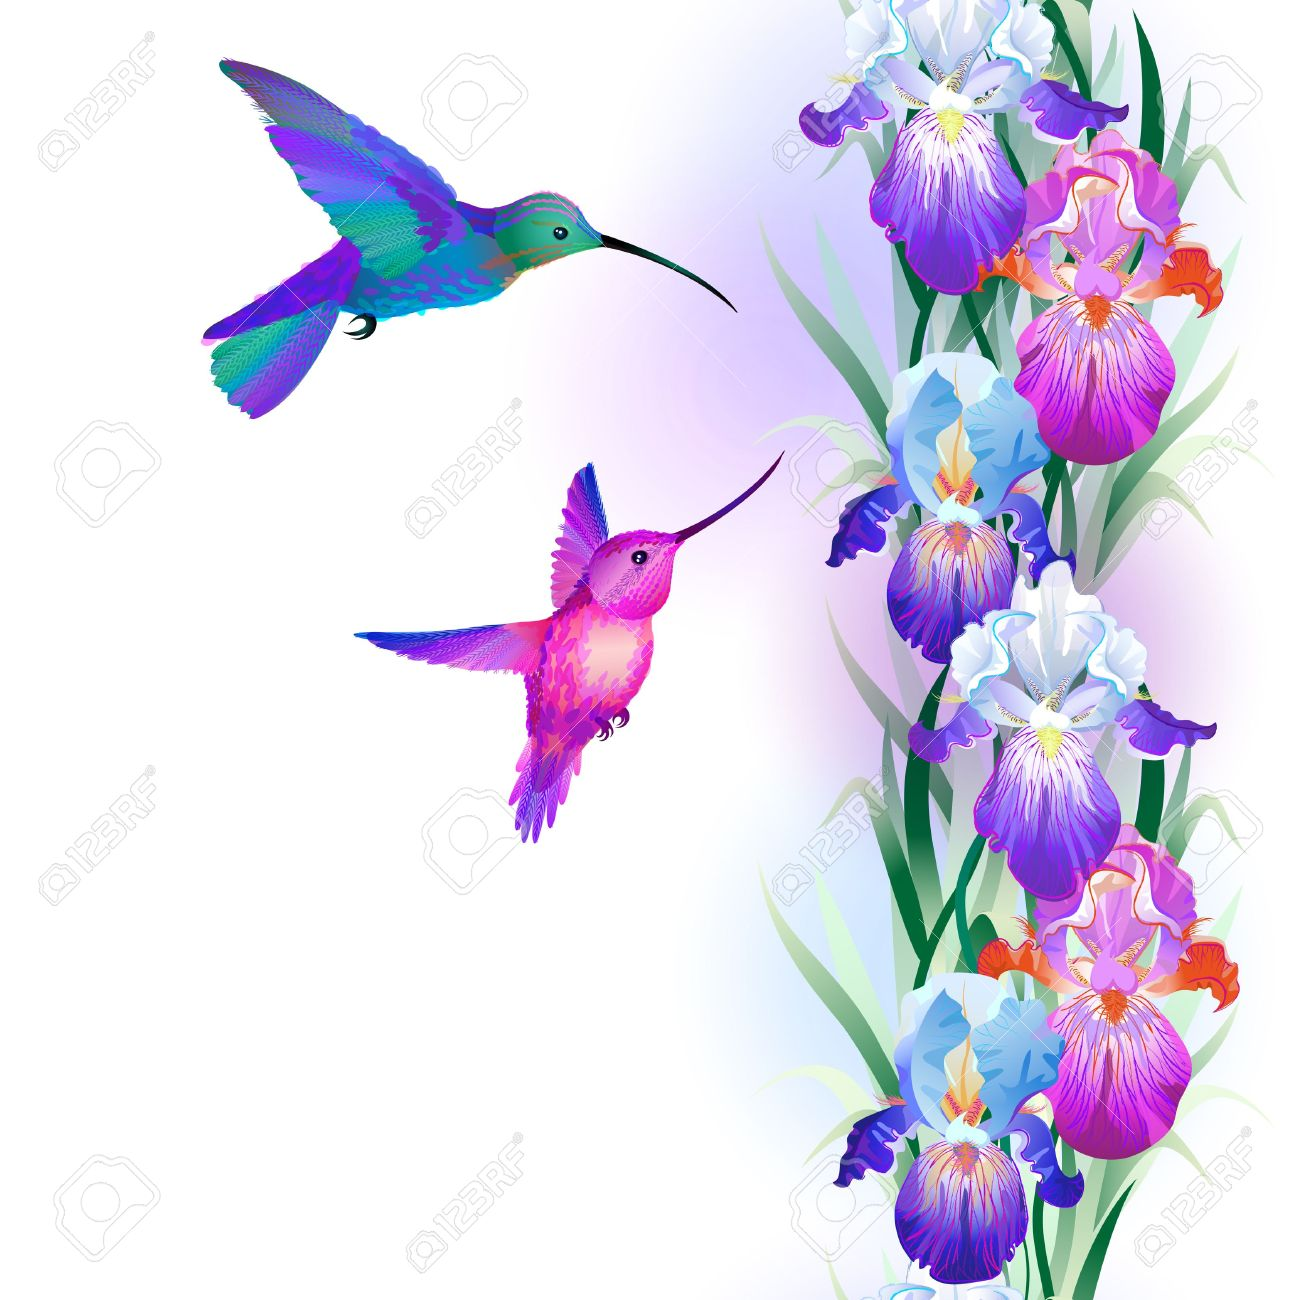 Hummingbirds and flowers clipart picture royalty free stock Hummingbird and flower clipart - ClipartFest picture royalty free stock